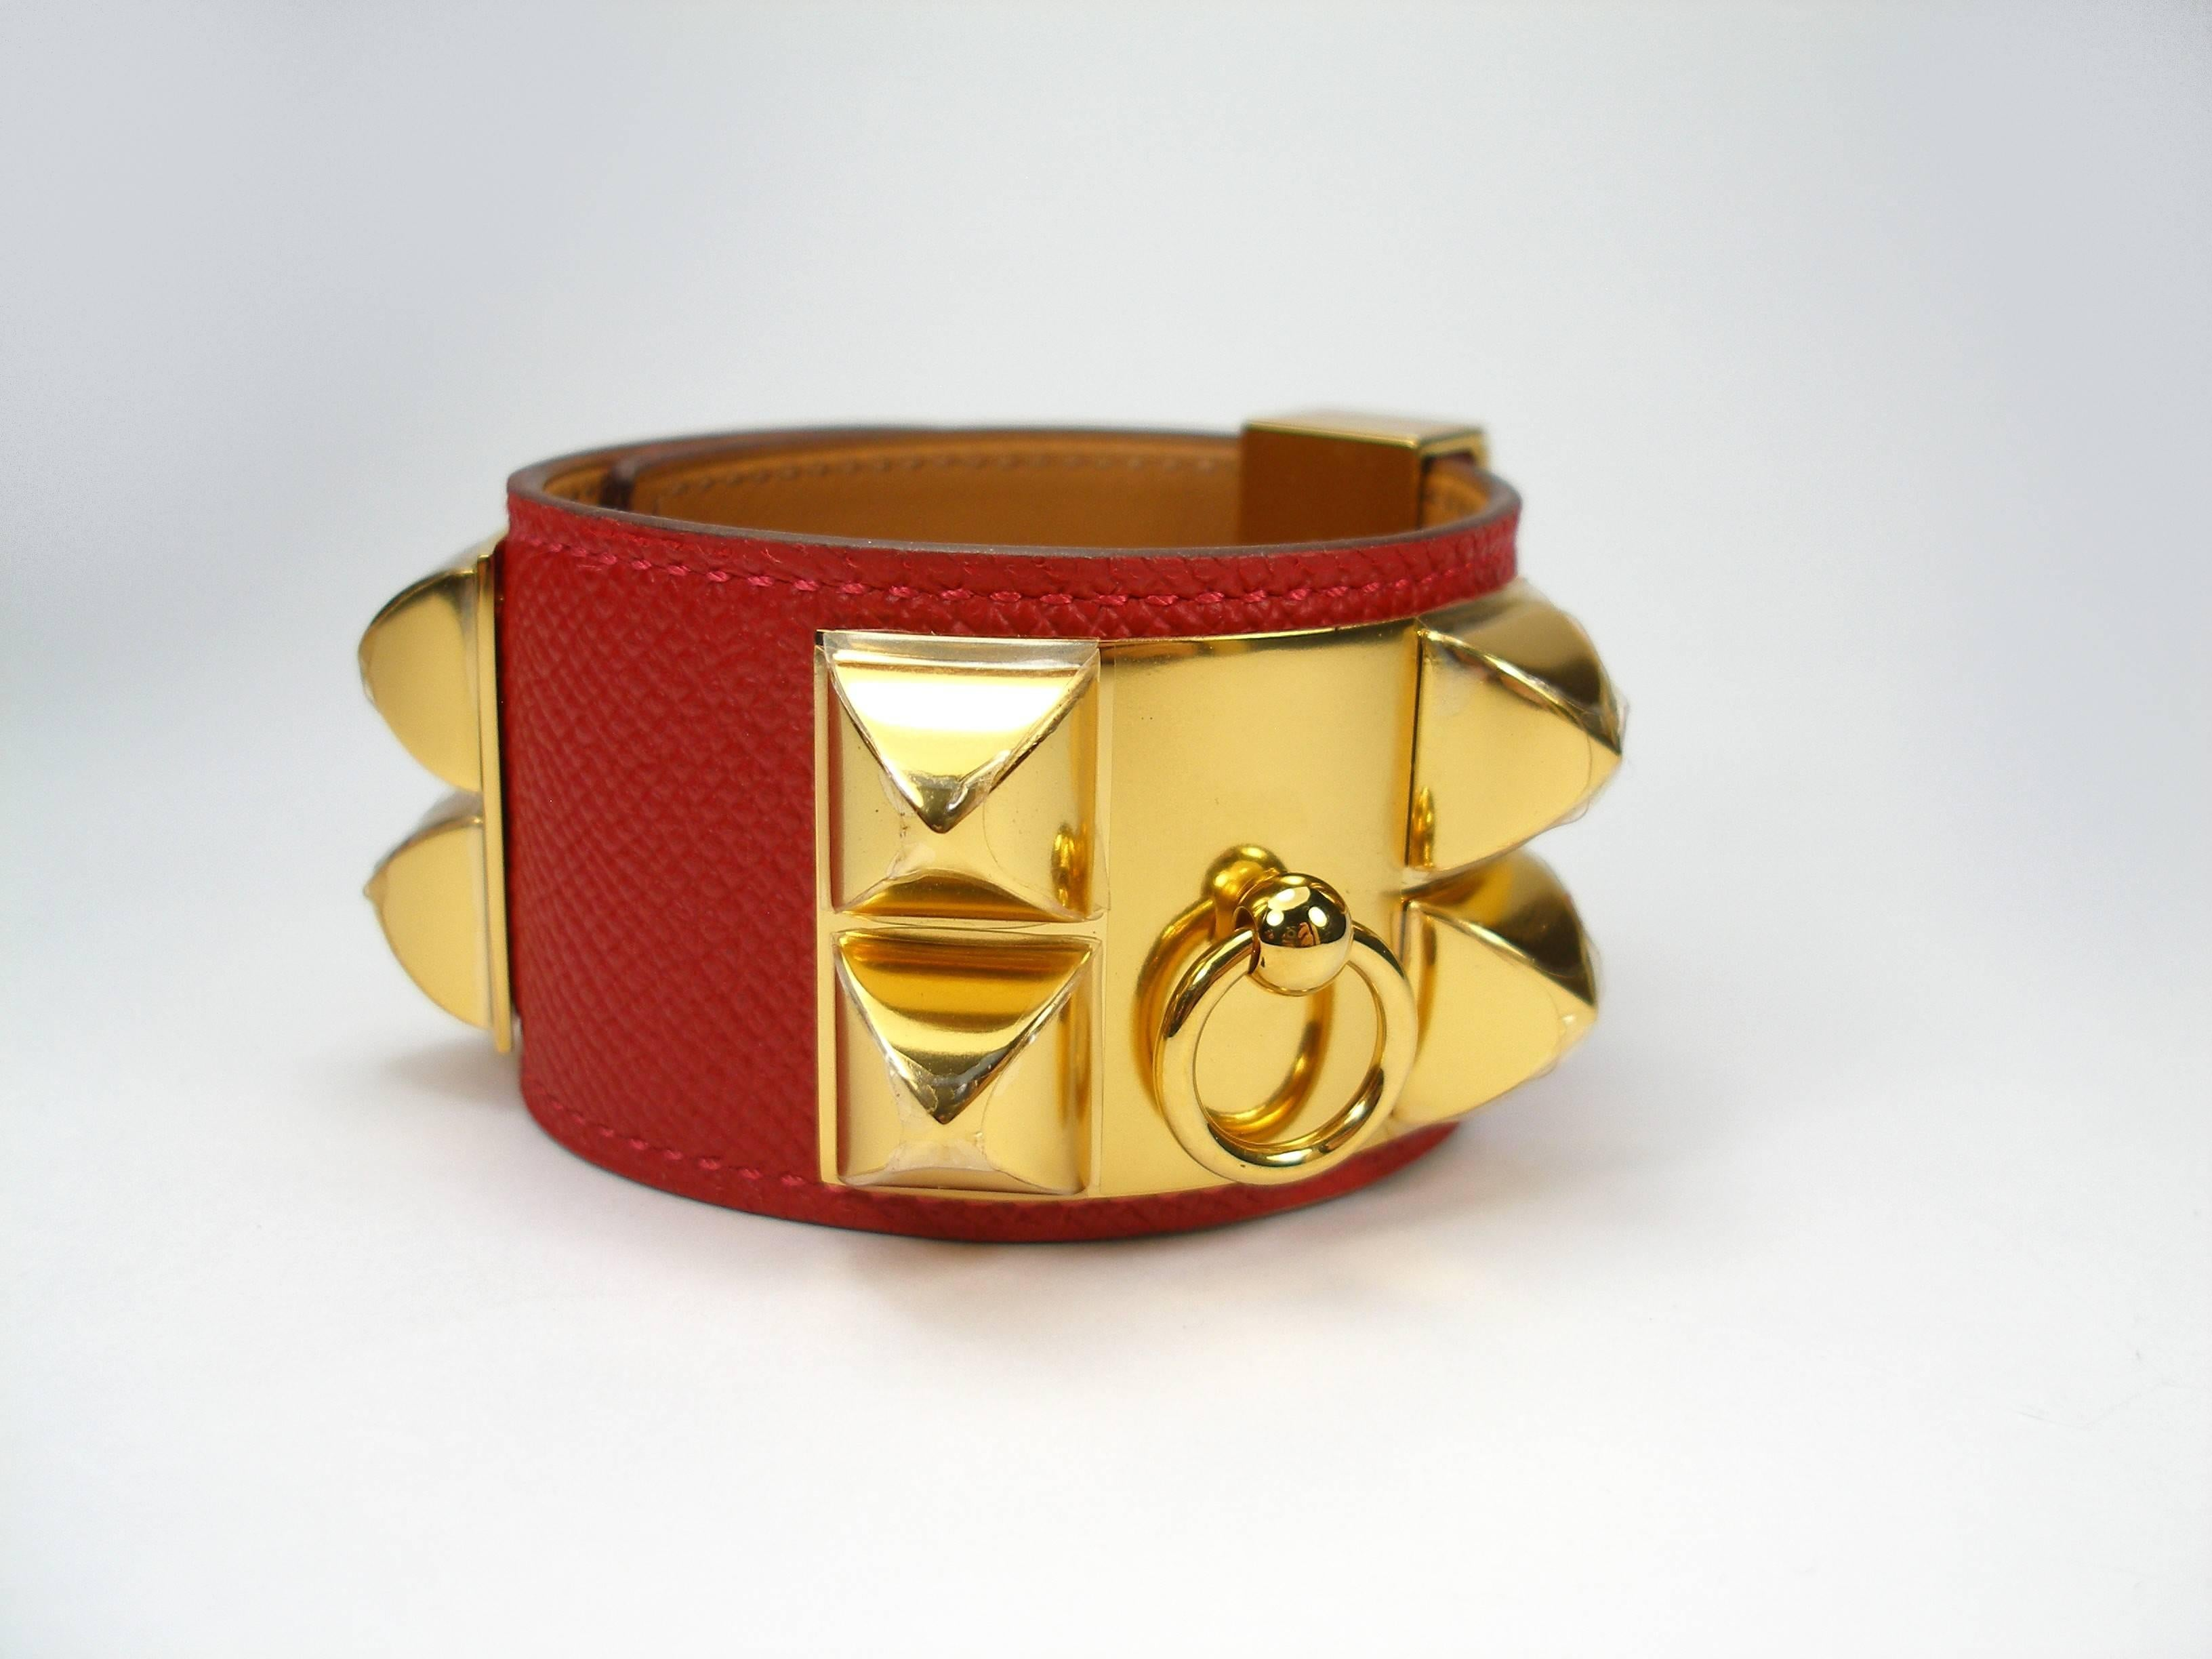 de wrap realreal bracelet collier s bracelets hermes herm jewelry the enlarged chien products